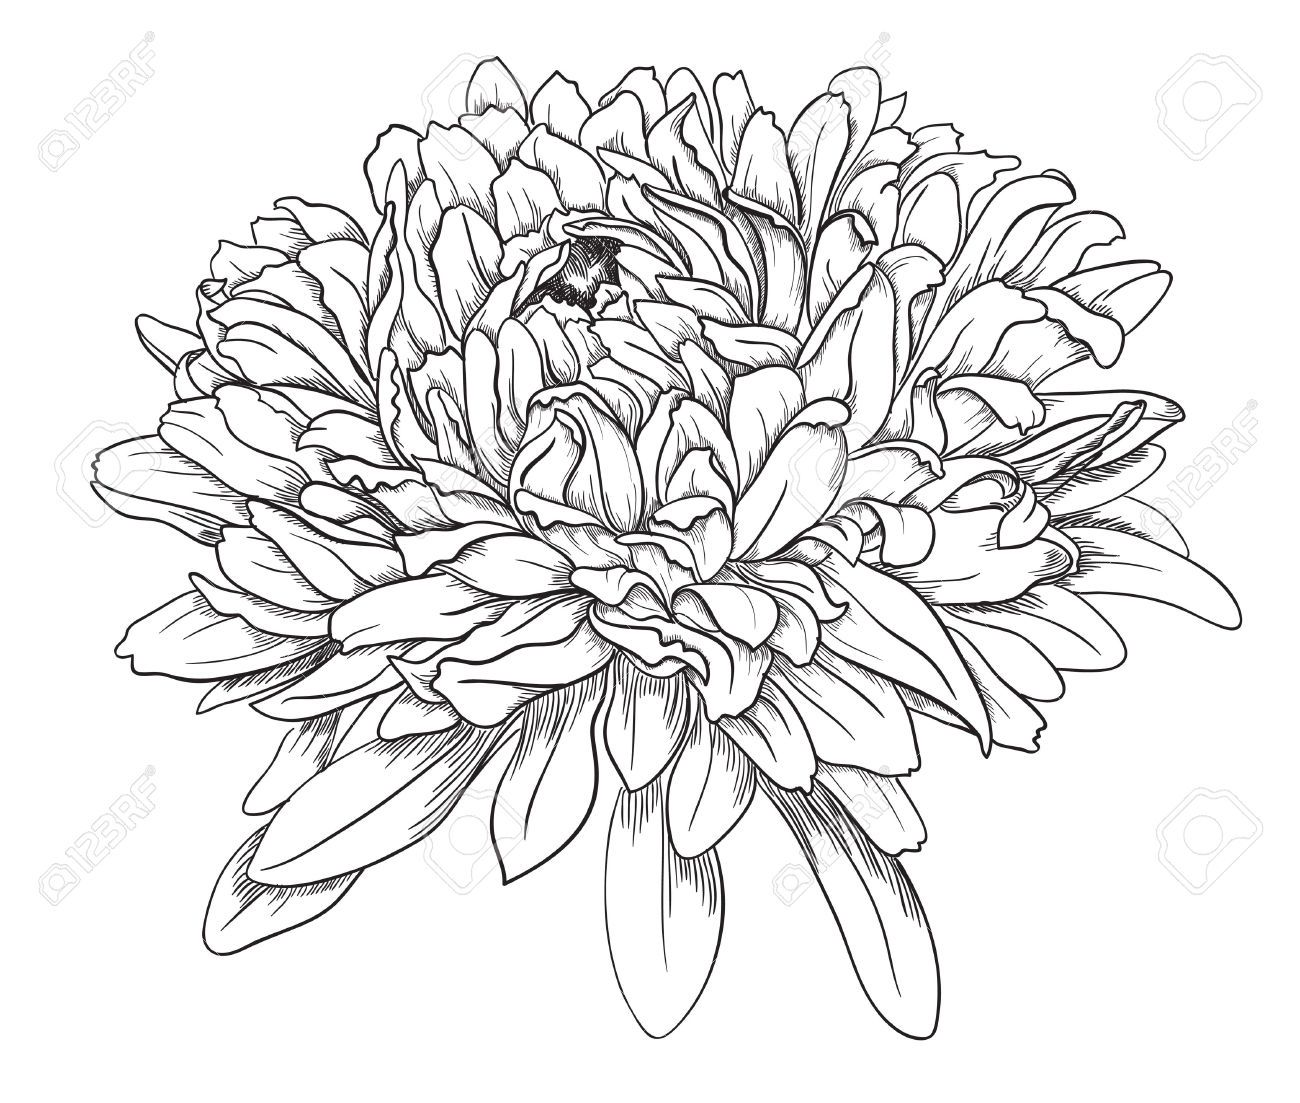 Peony flower isolated on white stock vector 368014568 shutterstock - Ink